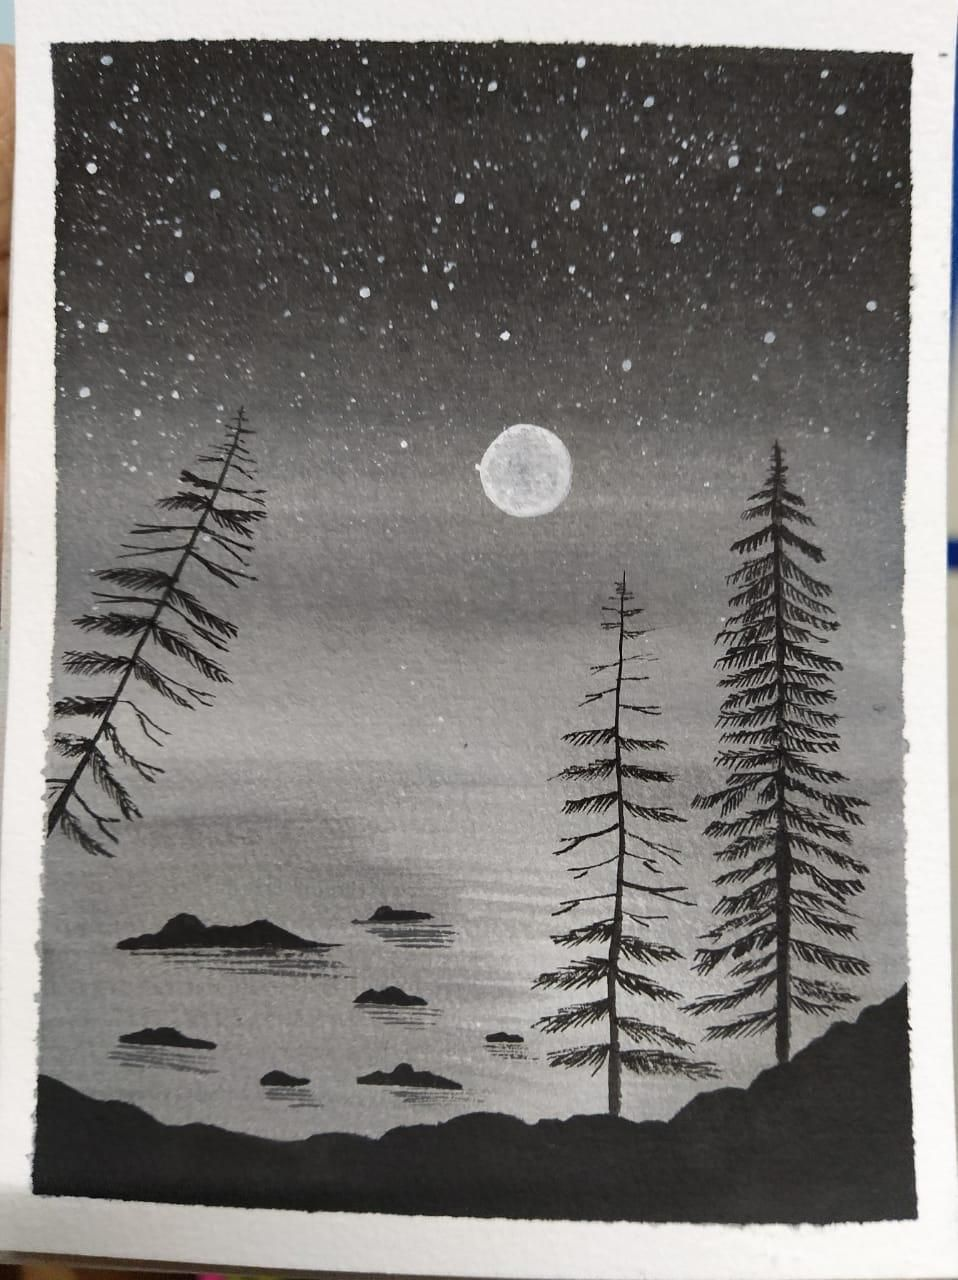 Pine Tree Paintings - image 2 - student project